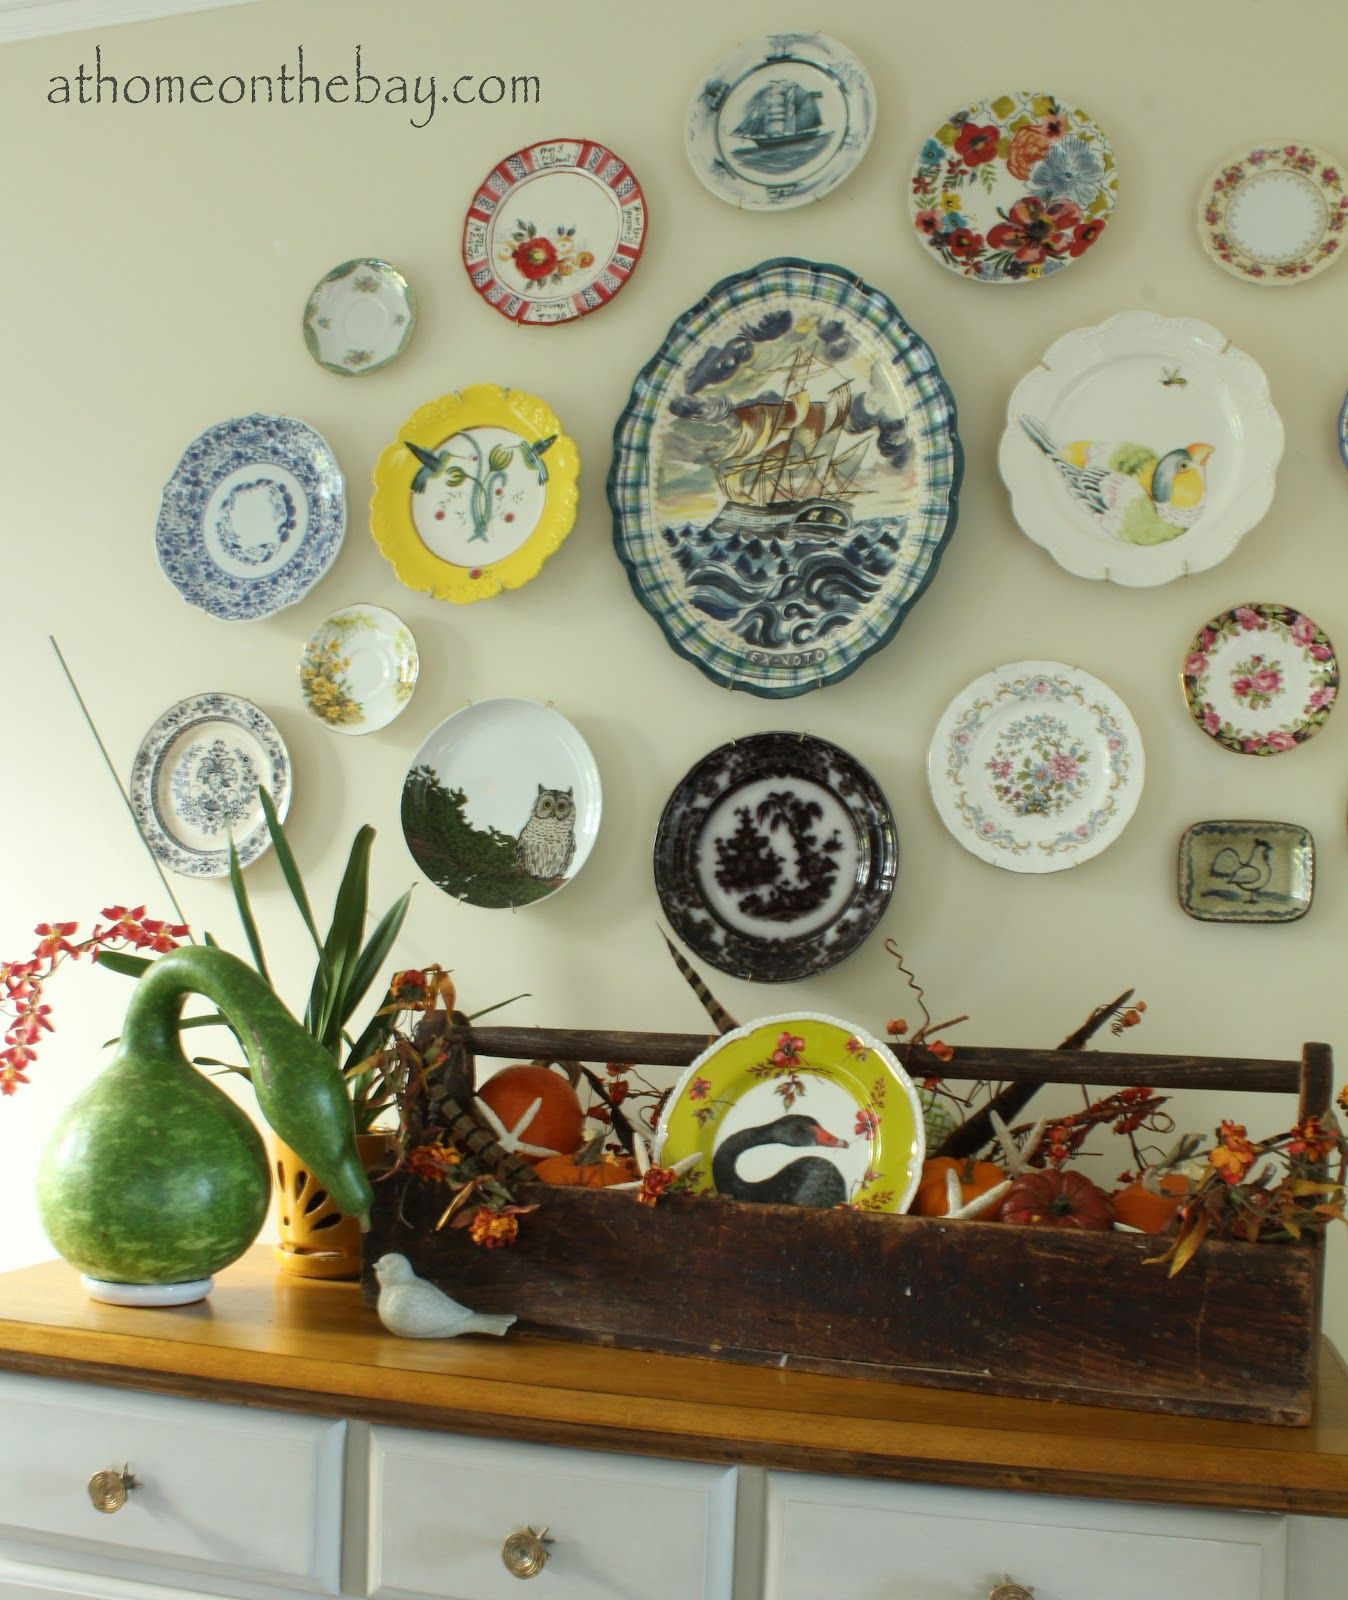 Superior Lovely Plate Wall {At Home On The Bay}   See Post For More Dining Nice Design